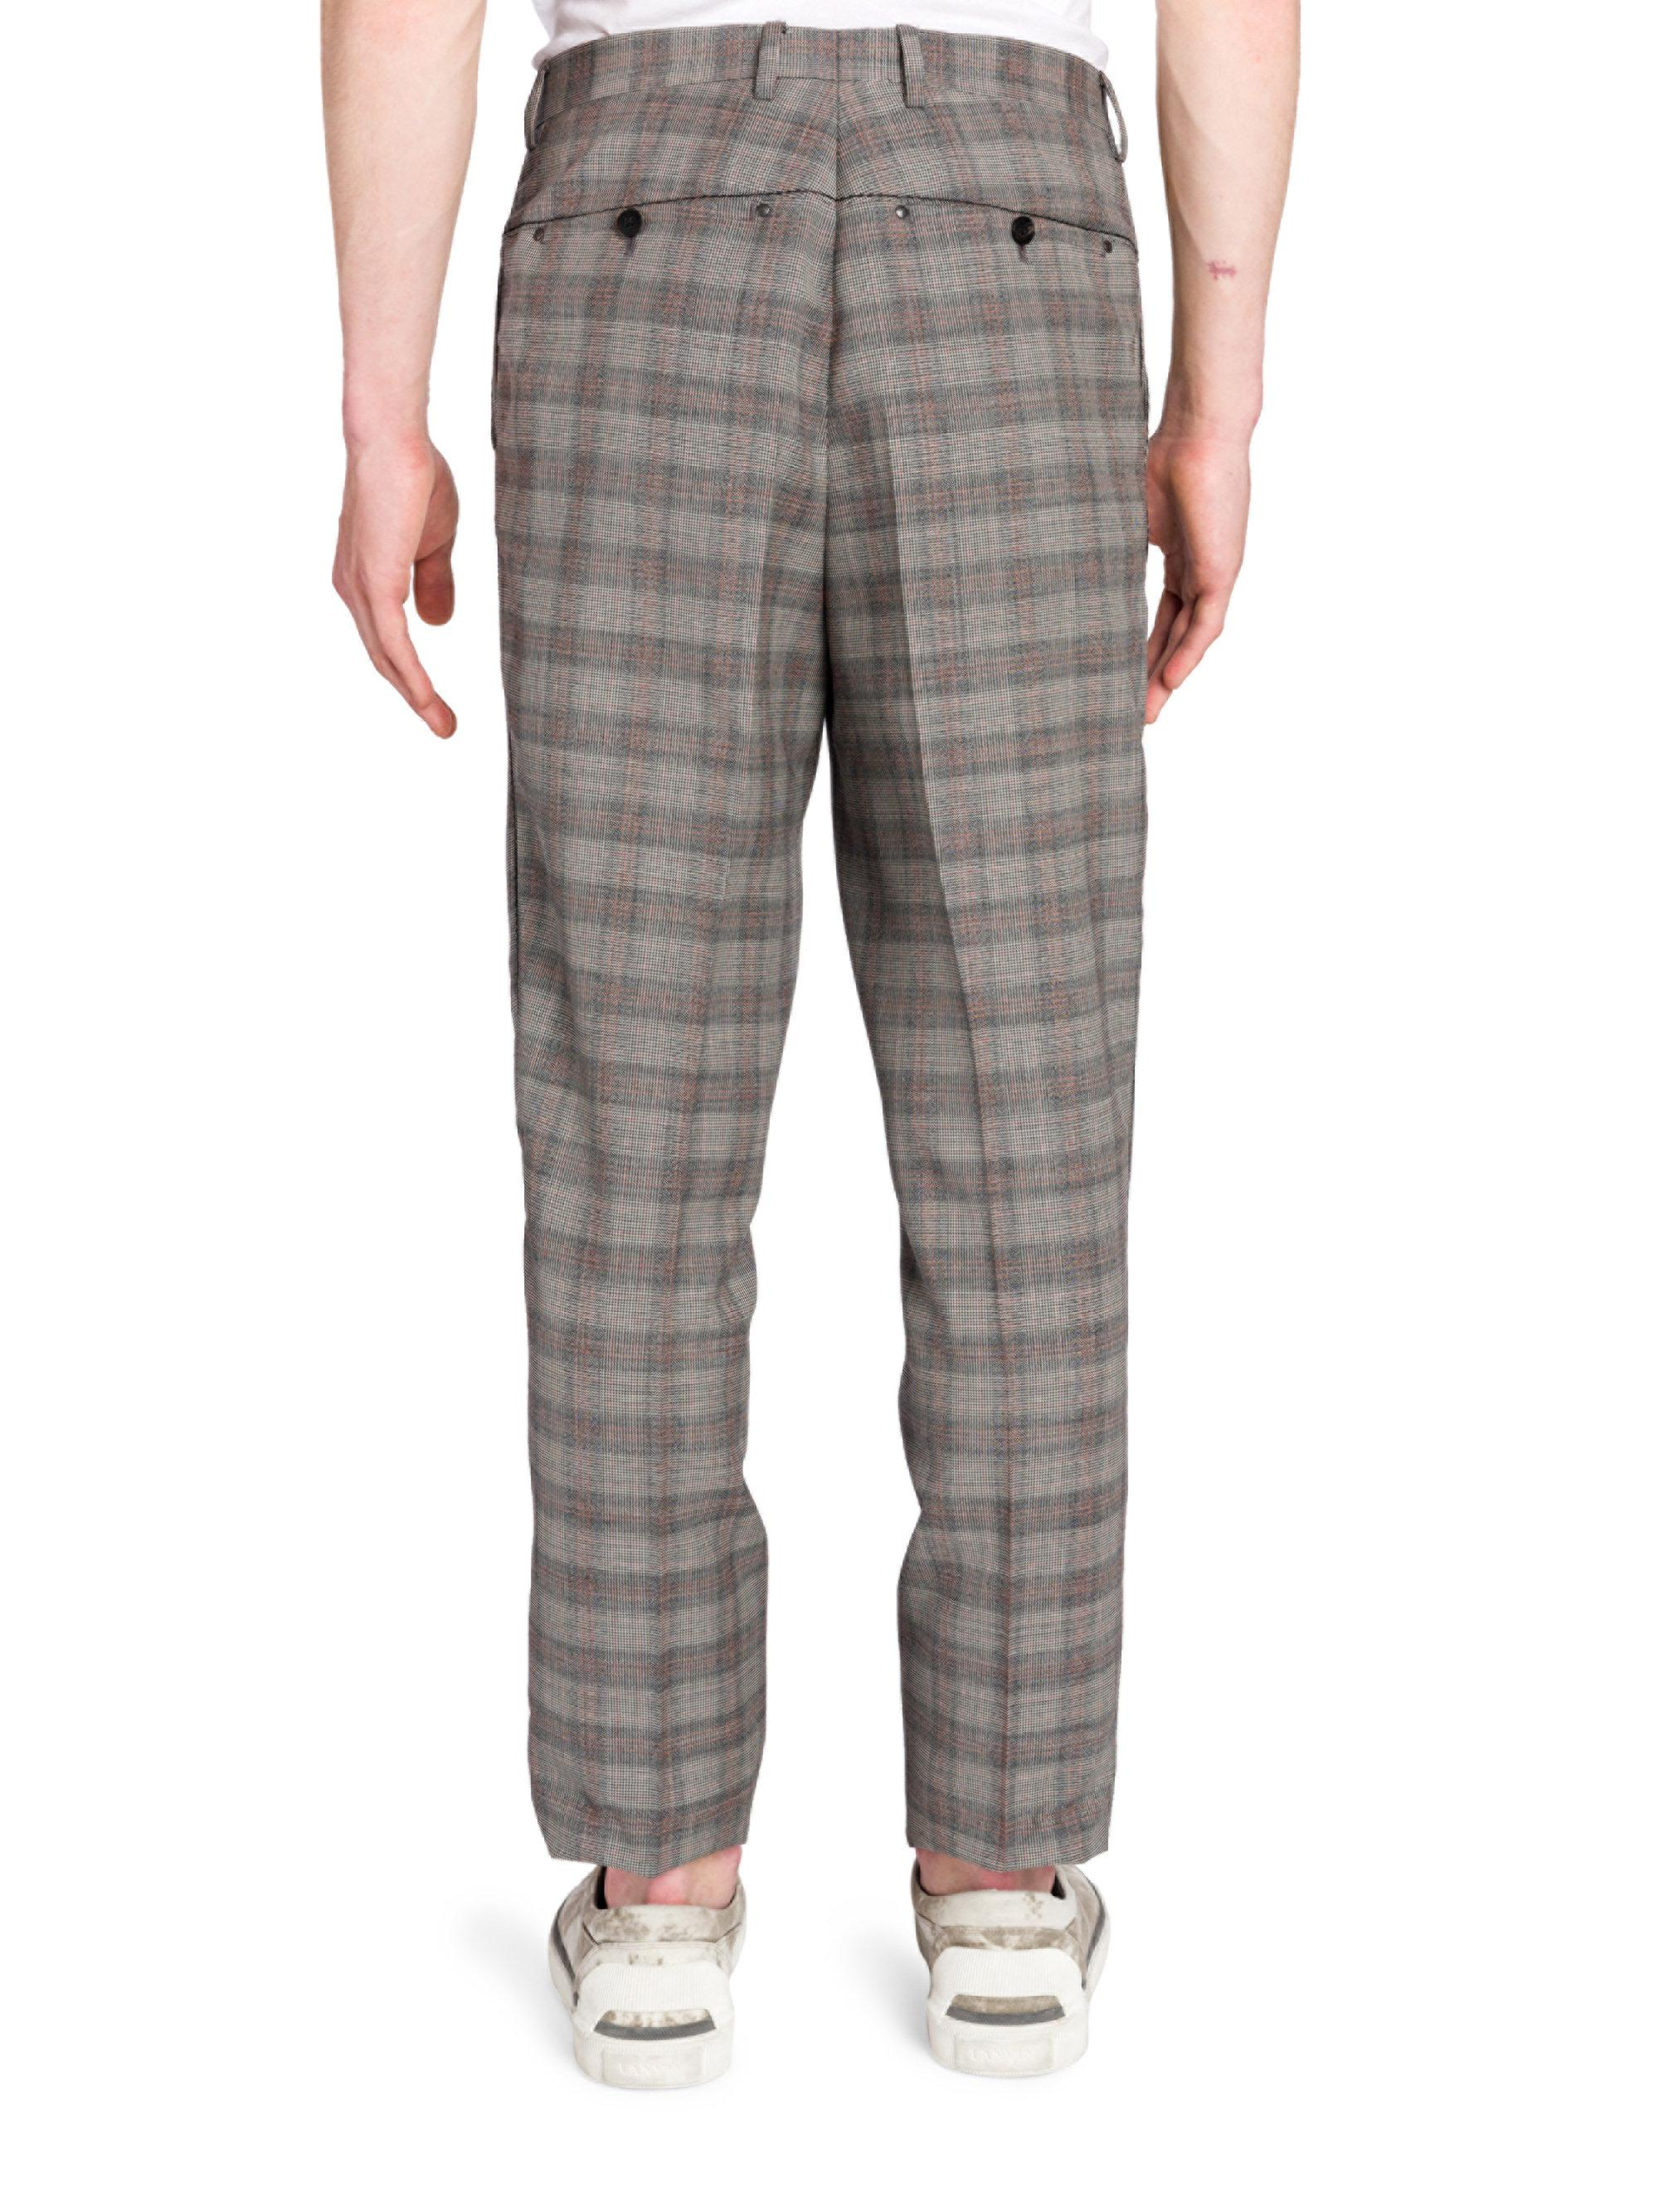 46343d0704 Lanvin Gray Riveted Prince Of Wales Wool Pants for men